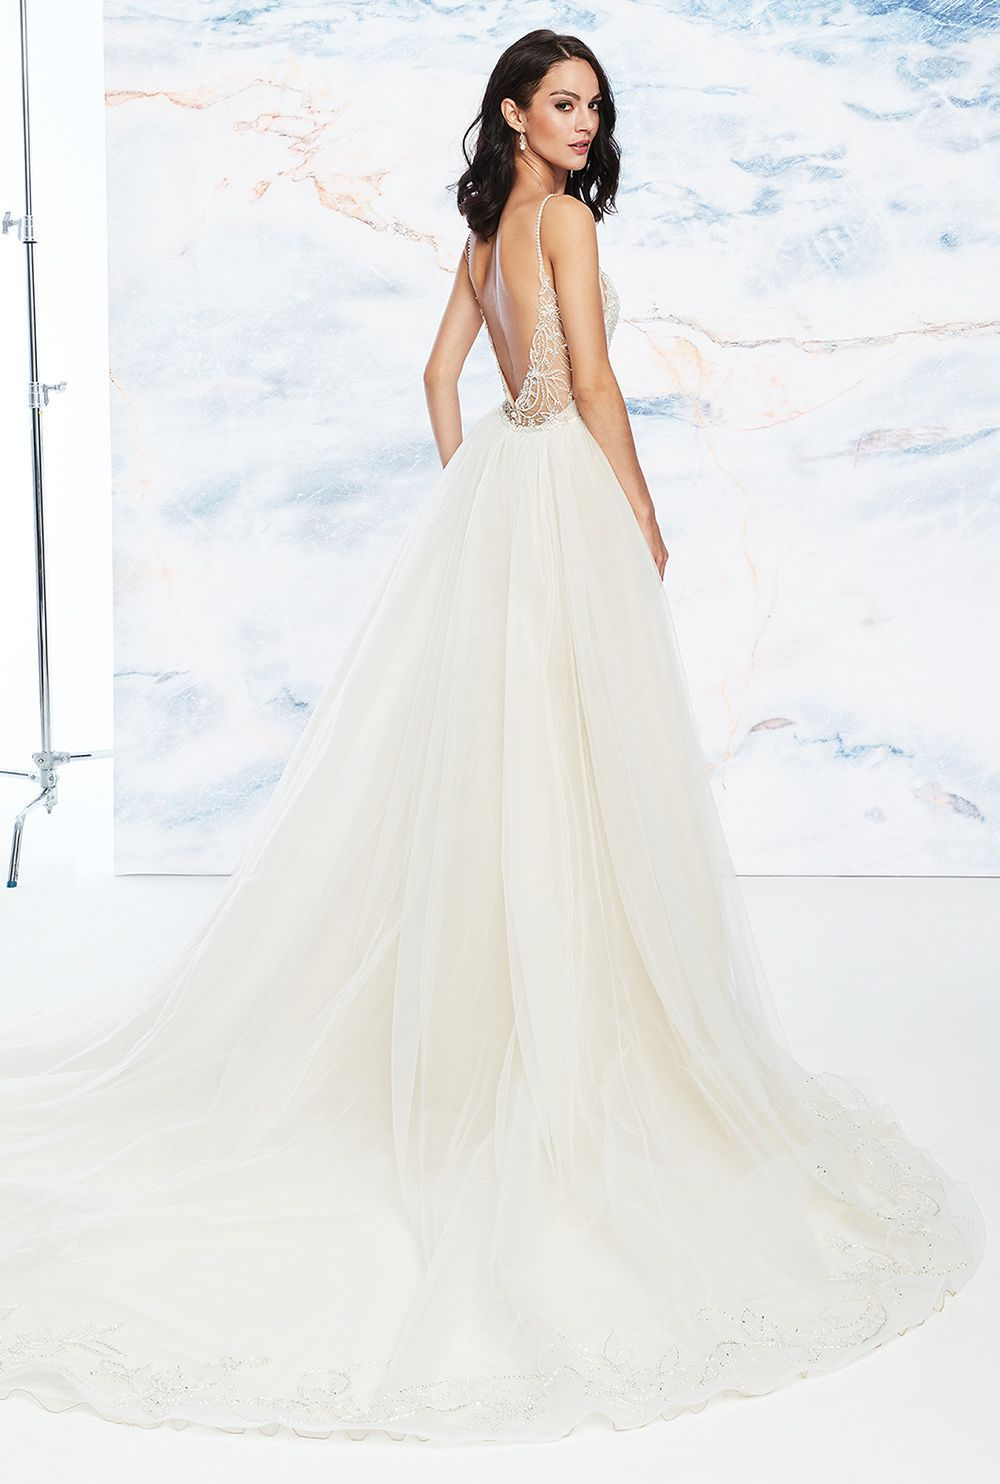 Justin Alexander Signature Style 99063 | Beaded Fit and Flare Dress with Detachable Train